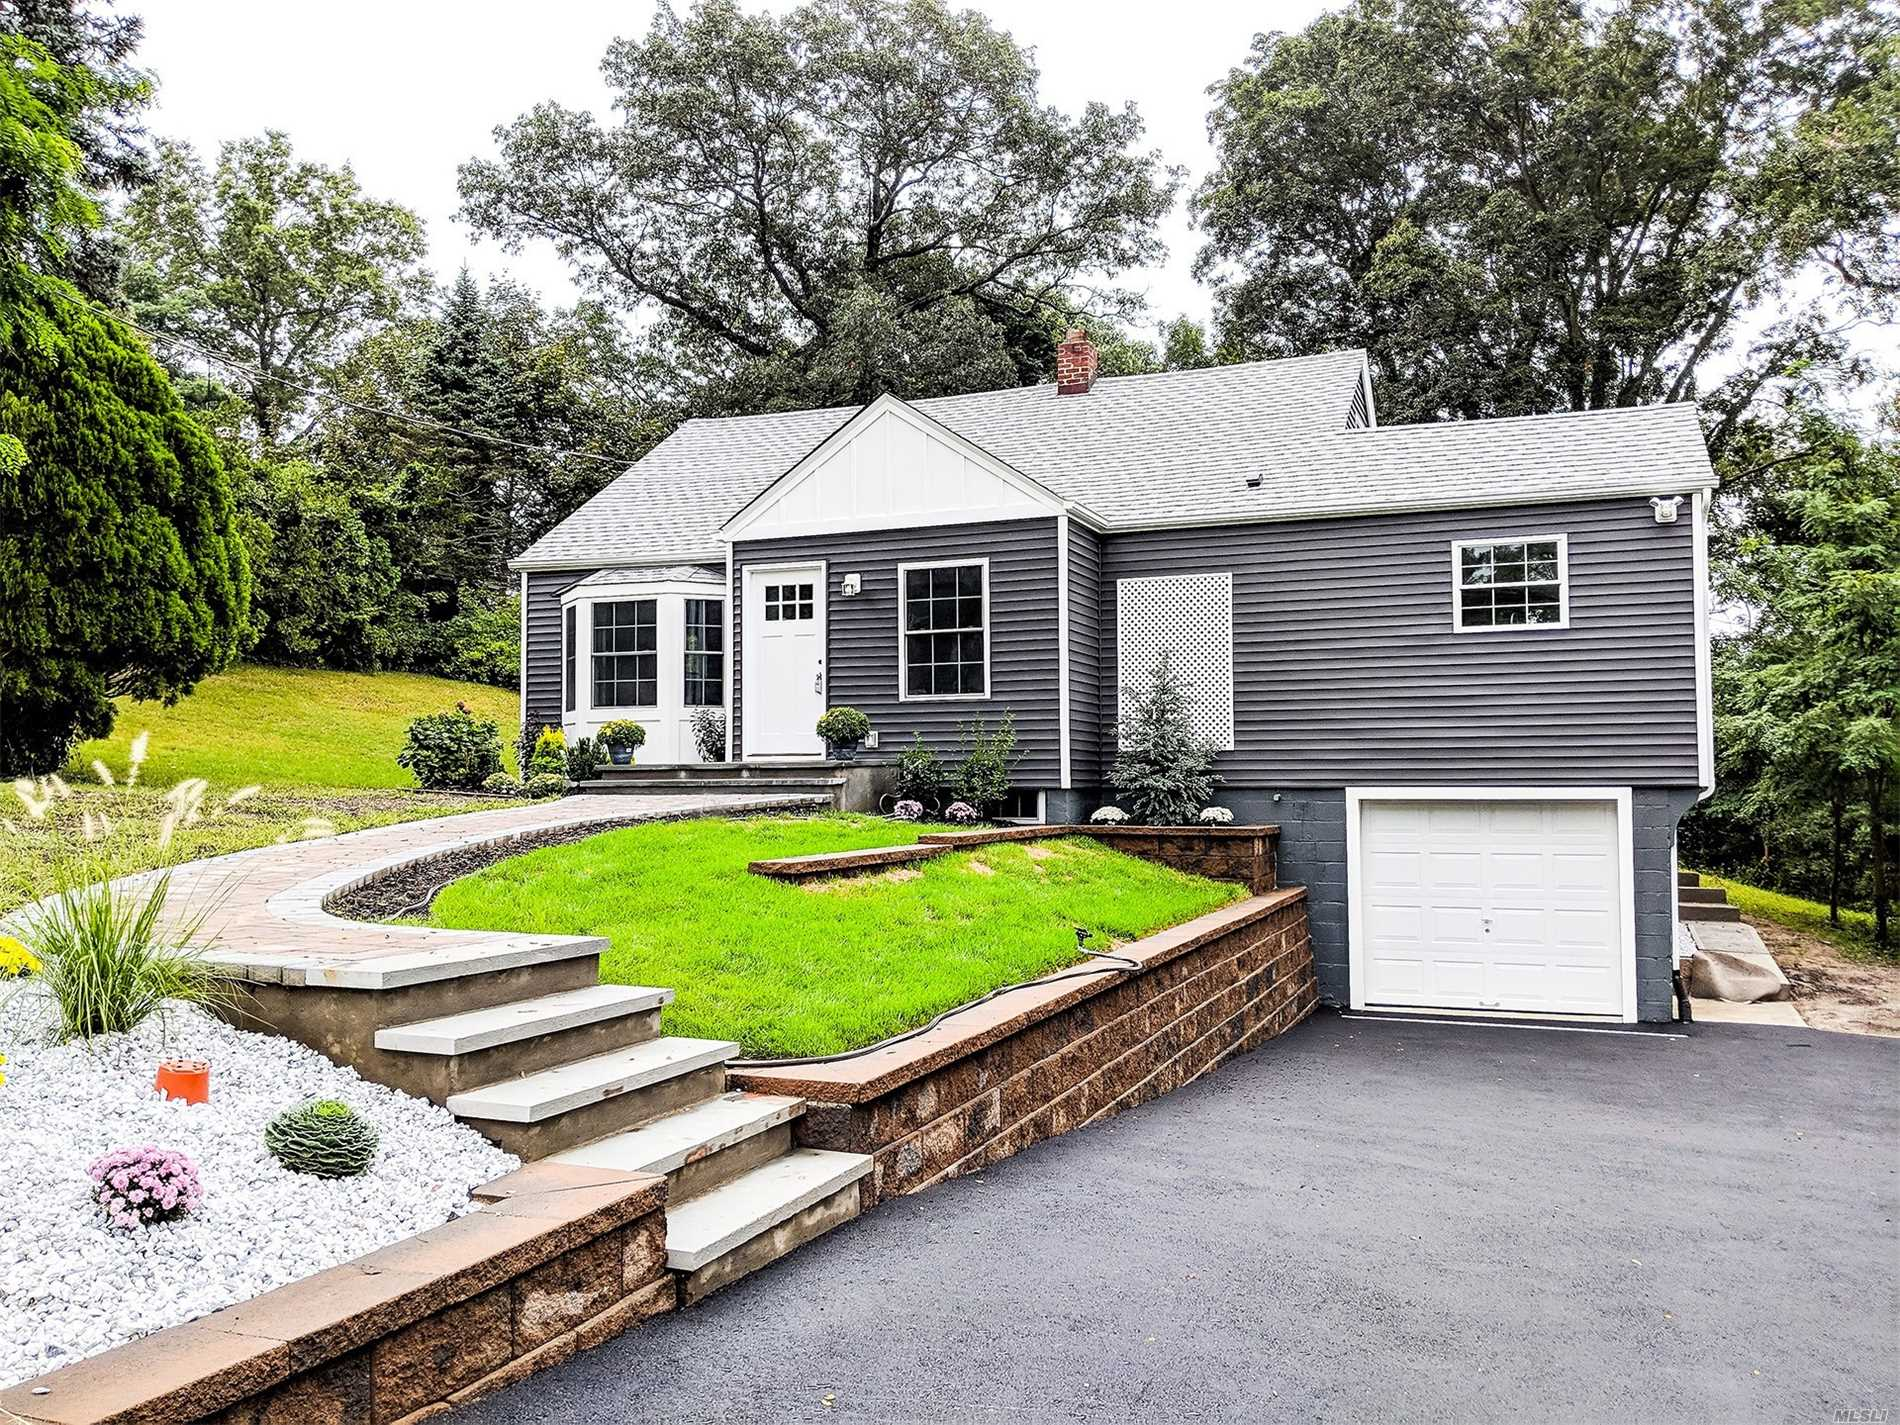 This Beautiful Cape In Smithtown Is Totally Renovated From Top To Bottom. It Features Hardwood Floors, Amazing Kitchen With Black Stainless Steel Appliances & Granite Counters, A Large Master Bedroom W/Full Bath En-Suite, 2 Additional Bedrooms W/Another Full Bath, Full Finished Basement With Outside Entrance, 1 Car Garage, Brand New Central Air, Gas Heating System, Roof, Windows, Siding